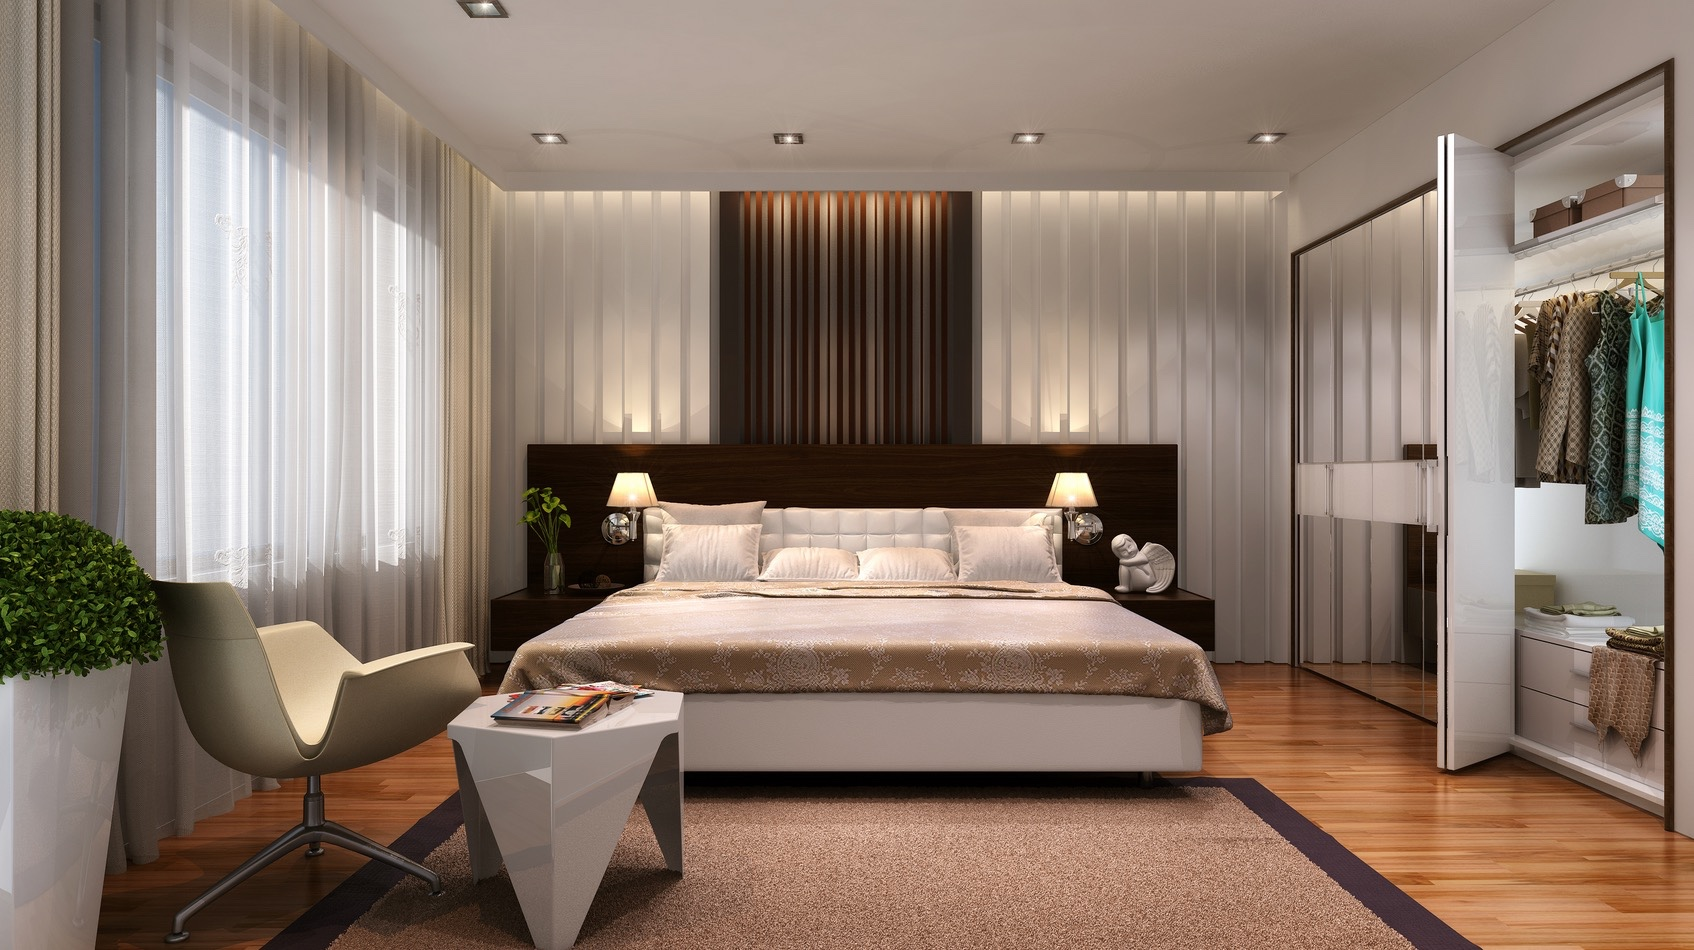 21 cool bedrooms for clean and simple design inspiration for Luxury bedroom inspiration